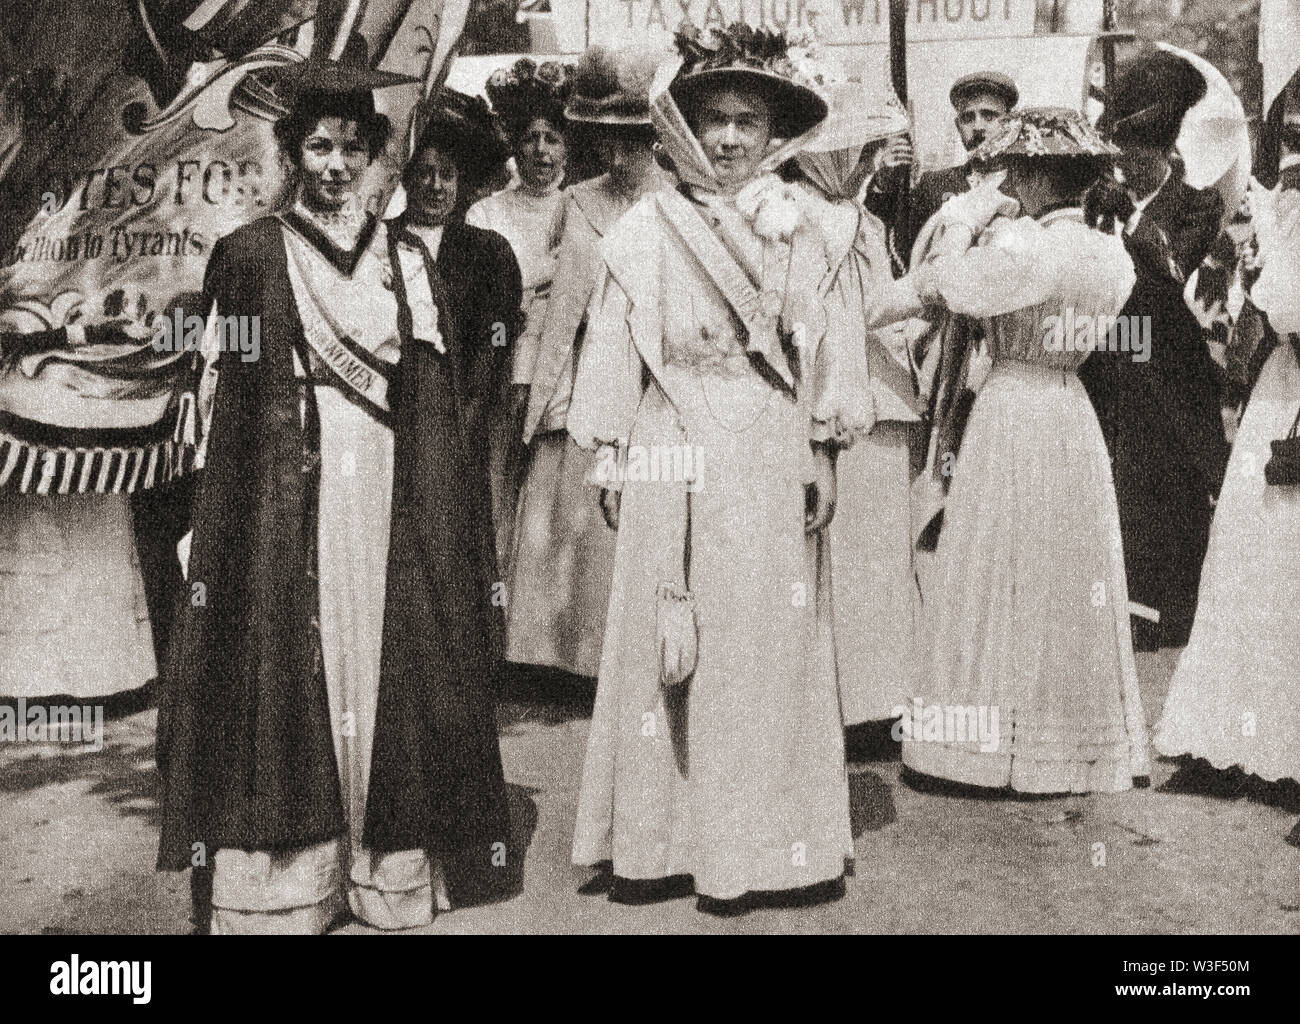 EDITORIAL Lady Emmeline Pethick-Lawrence, 1867 – 1954, left.  British women's rights activist.  Emmeline Pankhurst , née Goulden, 1858 – 1928, right.  British political activist and leader of the British suffragette movement. From The Pageant of the Century, published 1934. Stock Photo